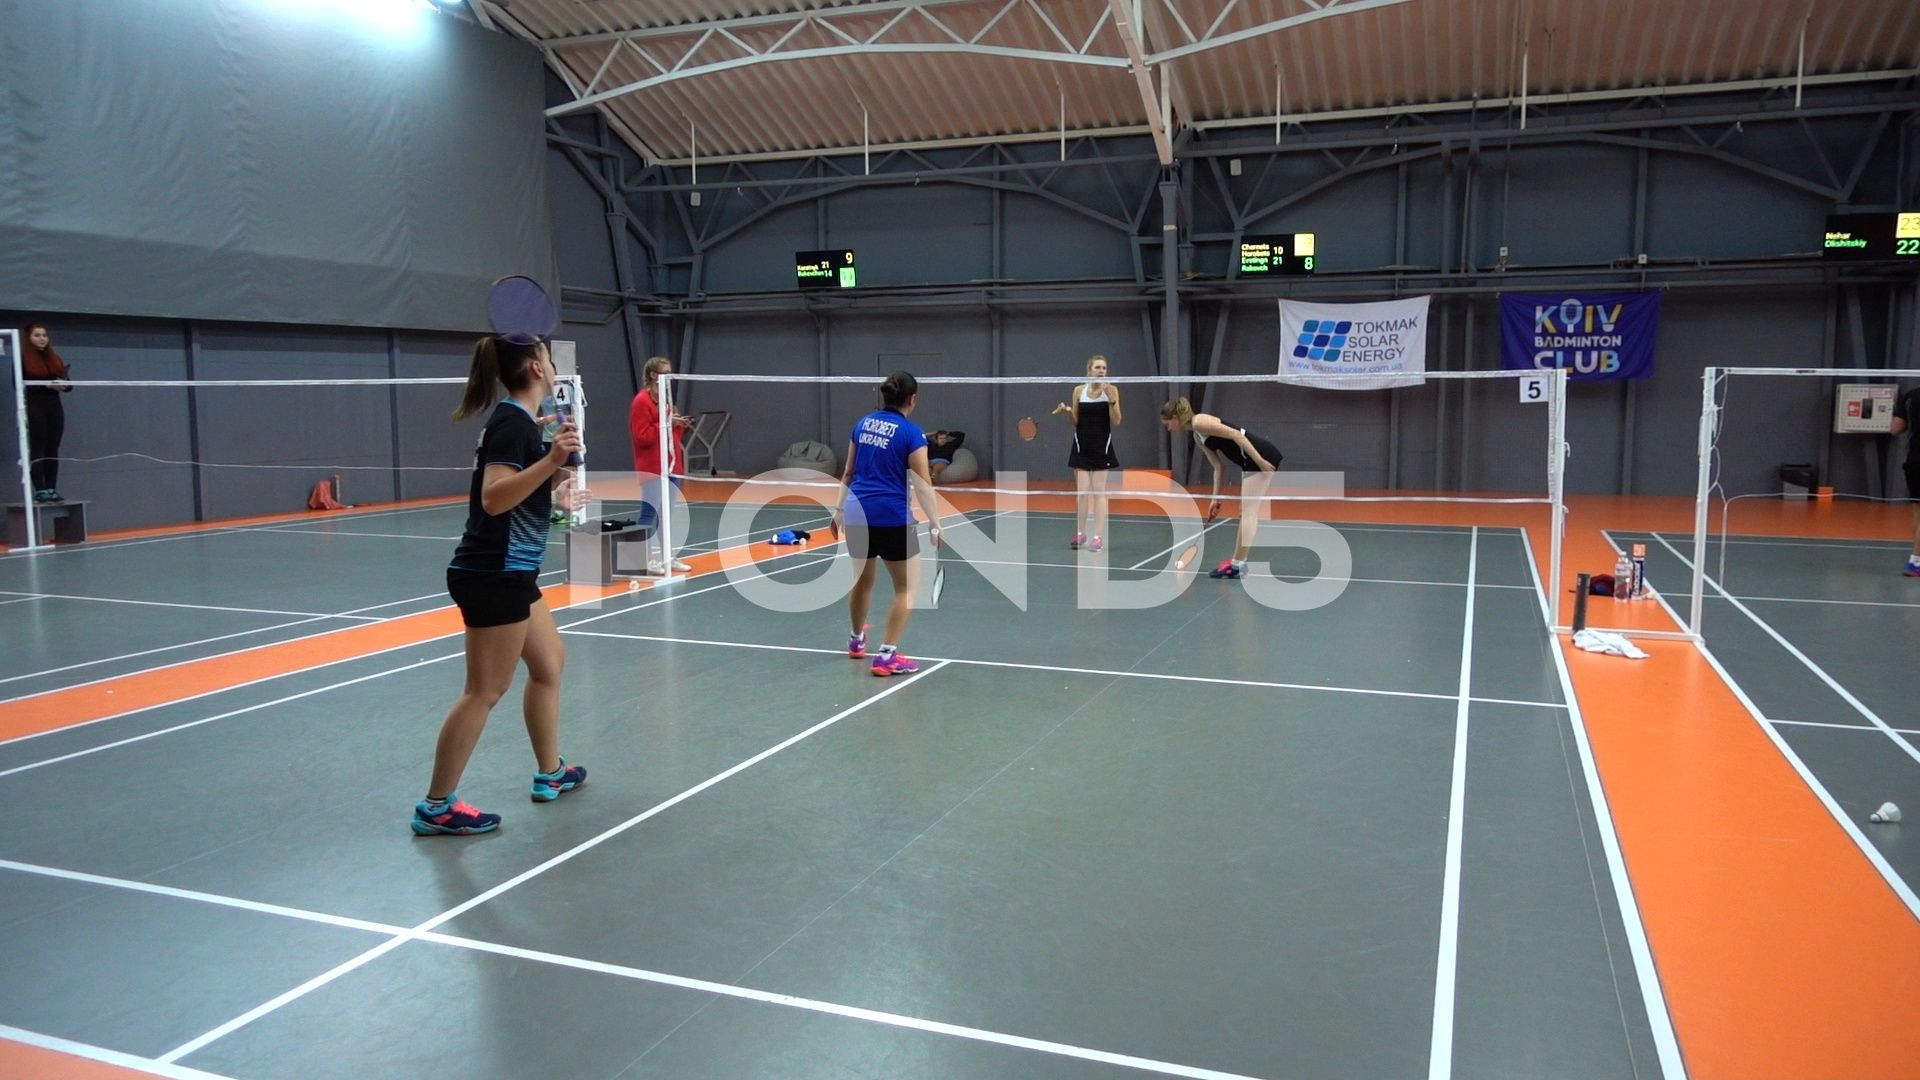 Badminton Match Professional Racket Activity Athlete Court Player Ball Competition Exercise Game I Badminton Workout Games Tournaments